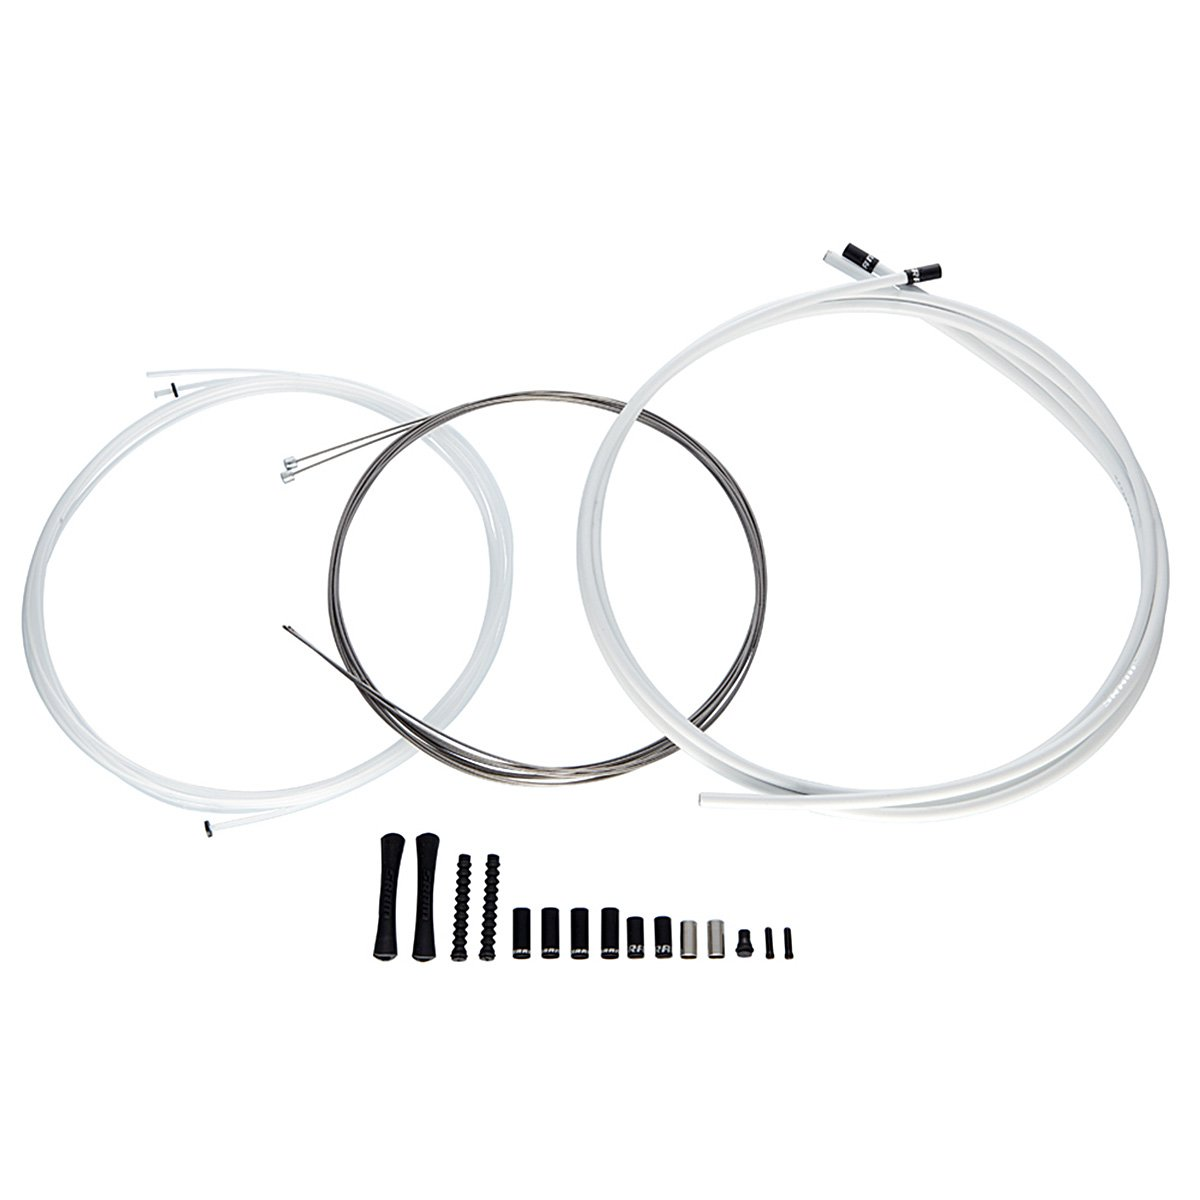 SRAM Slickwire Pro Shift Cable Kit, White, 4mm by SRAM